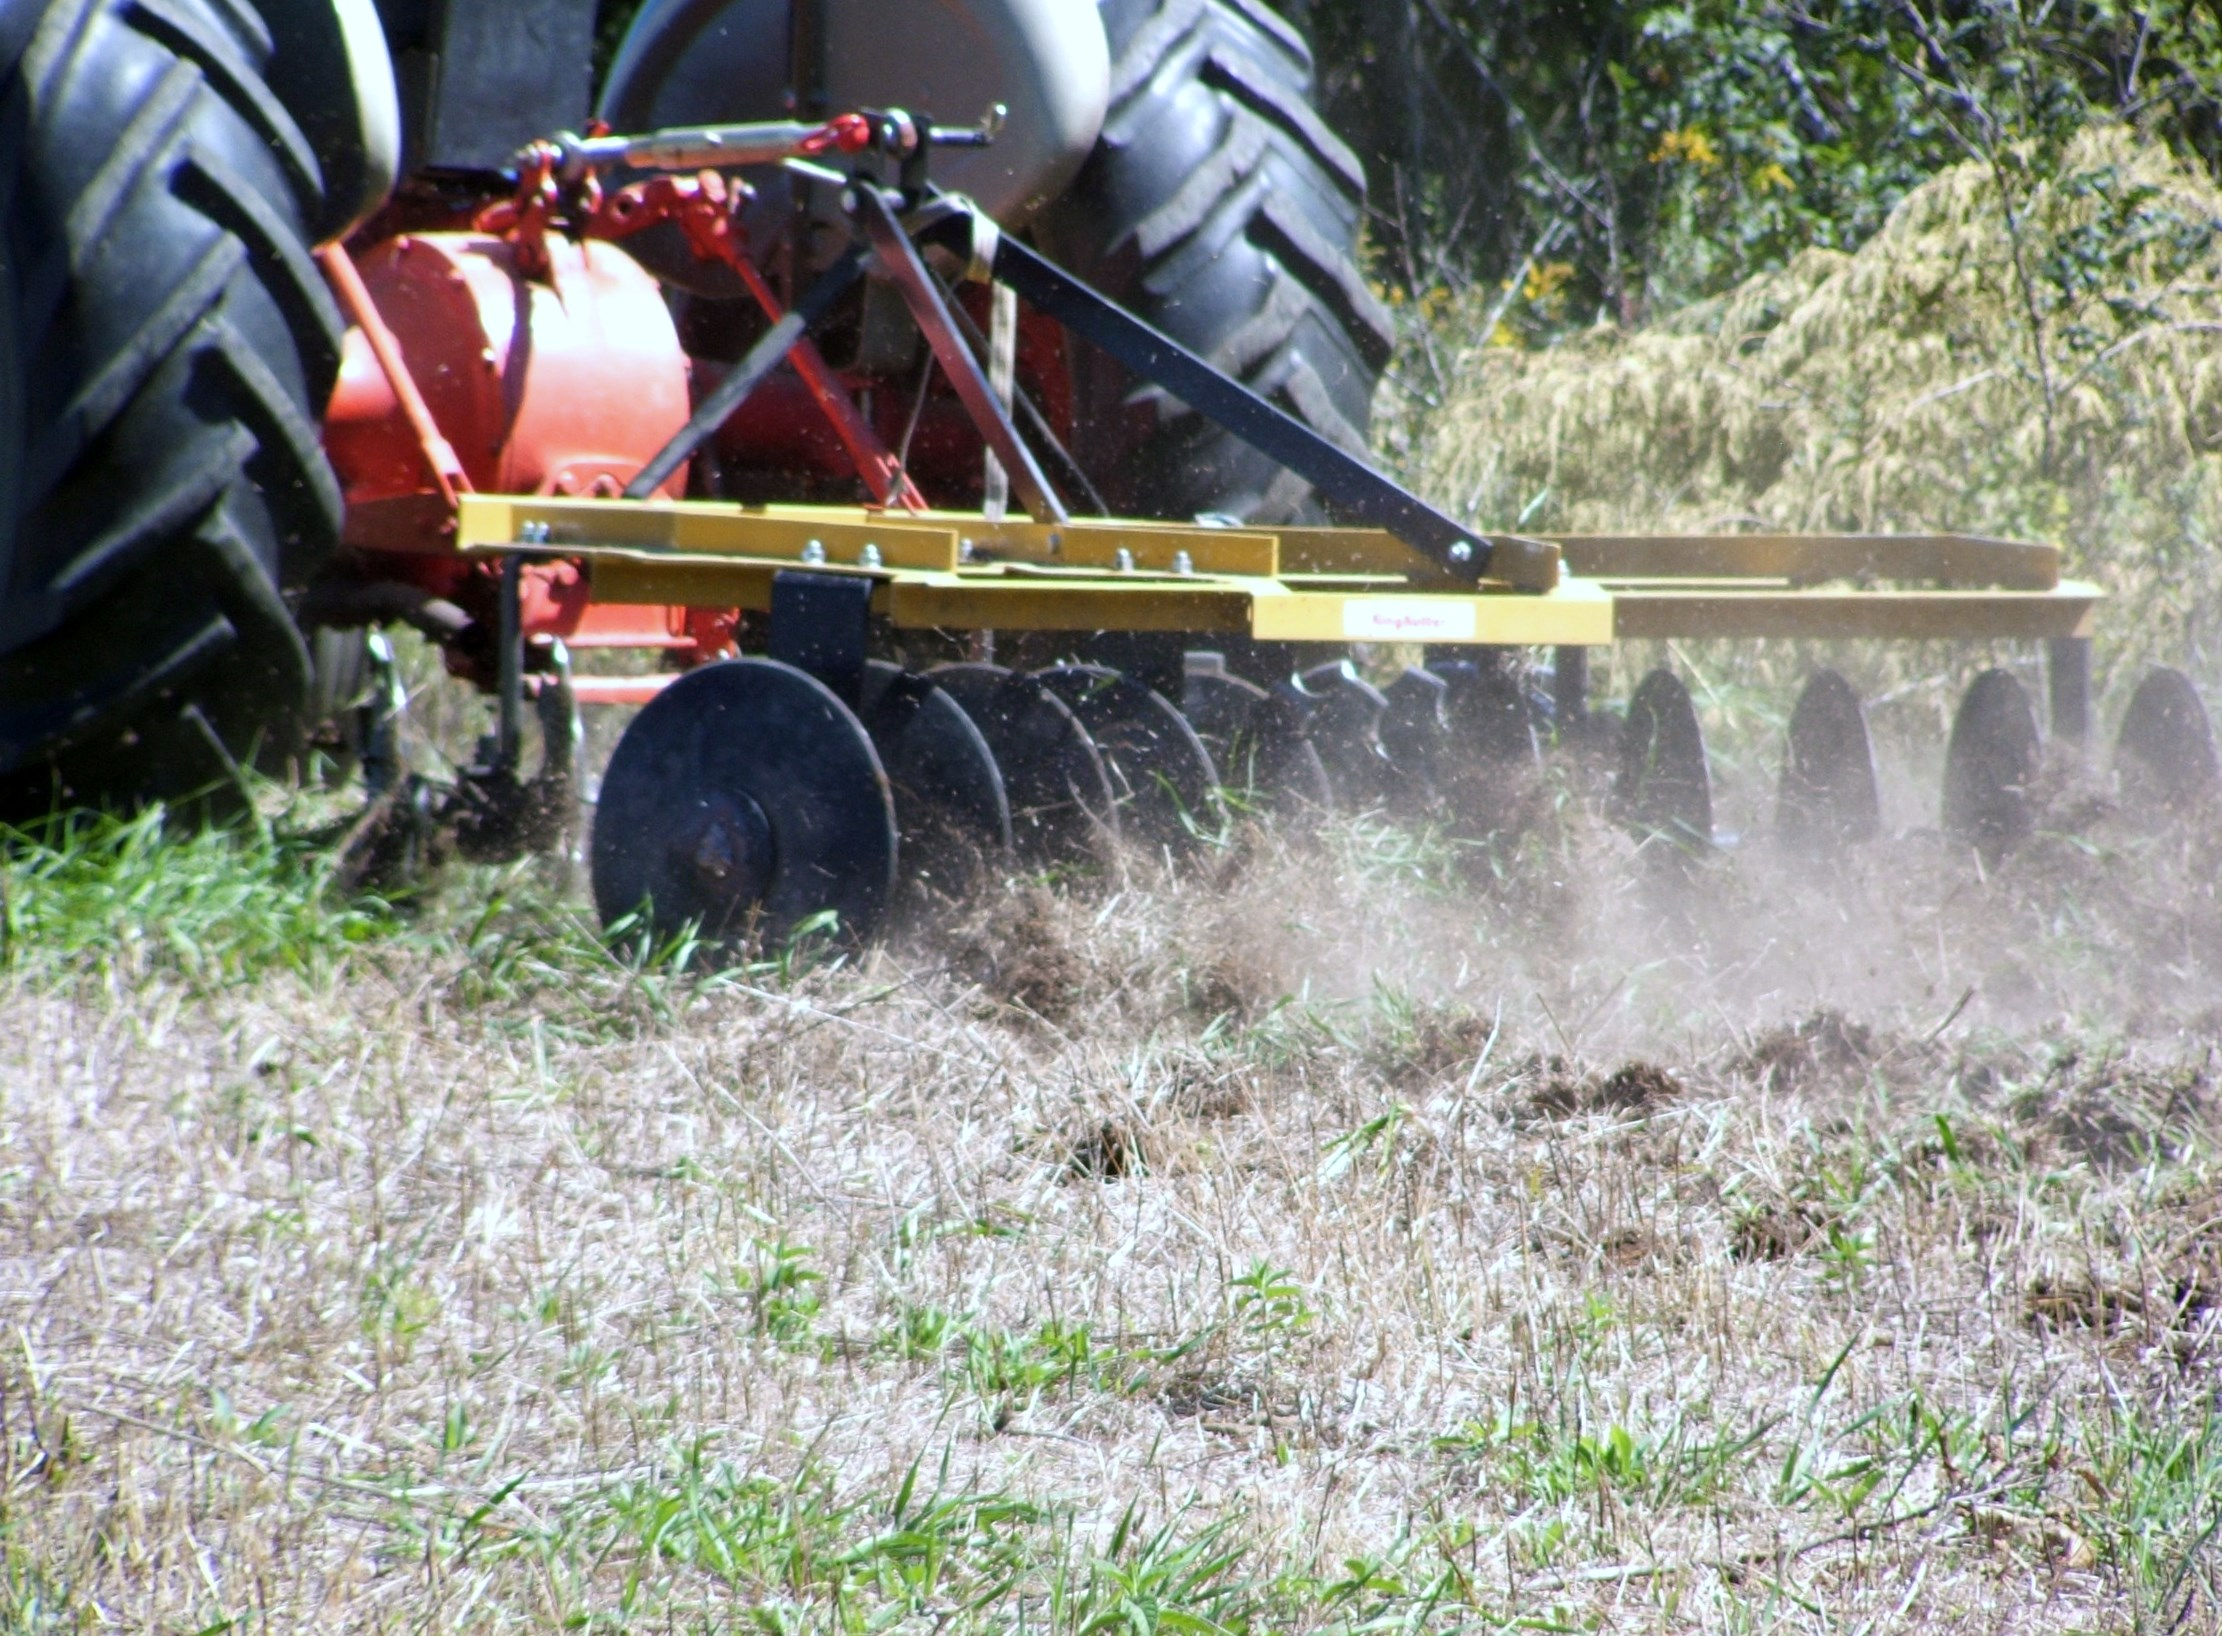 A tractor and disc is all you need to plant every food plot.